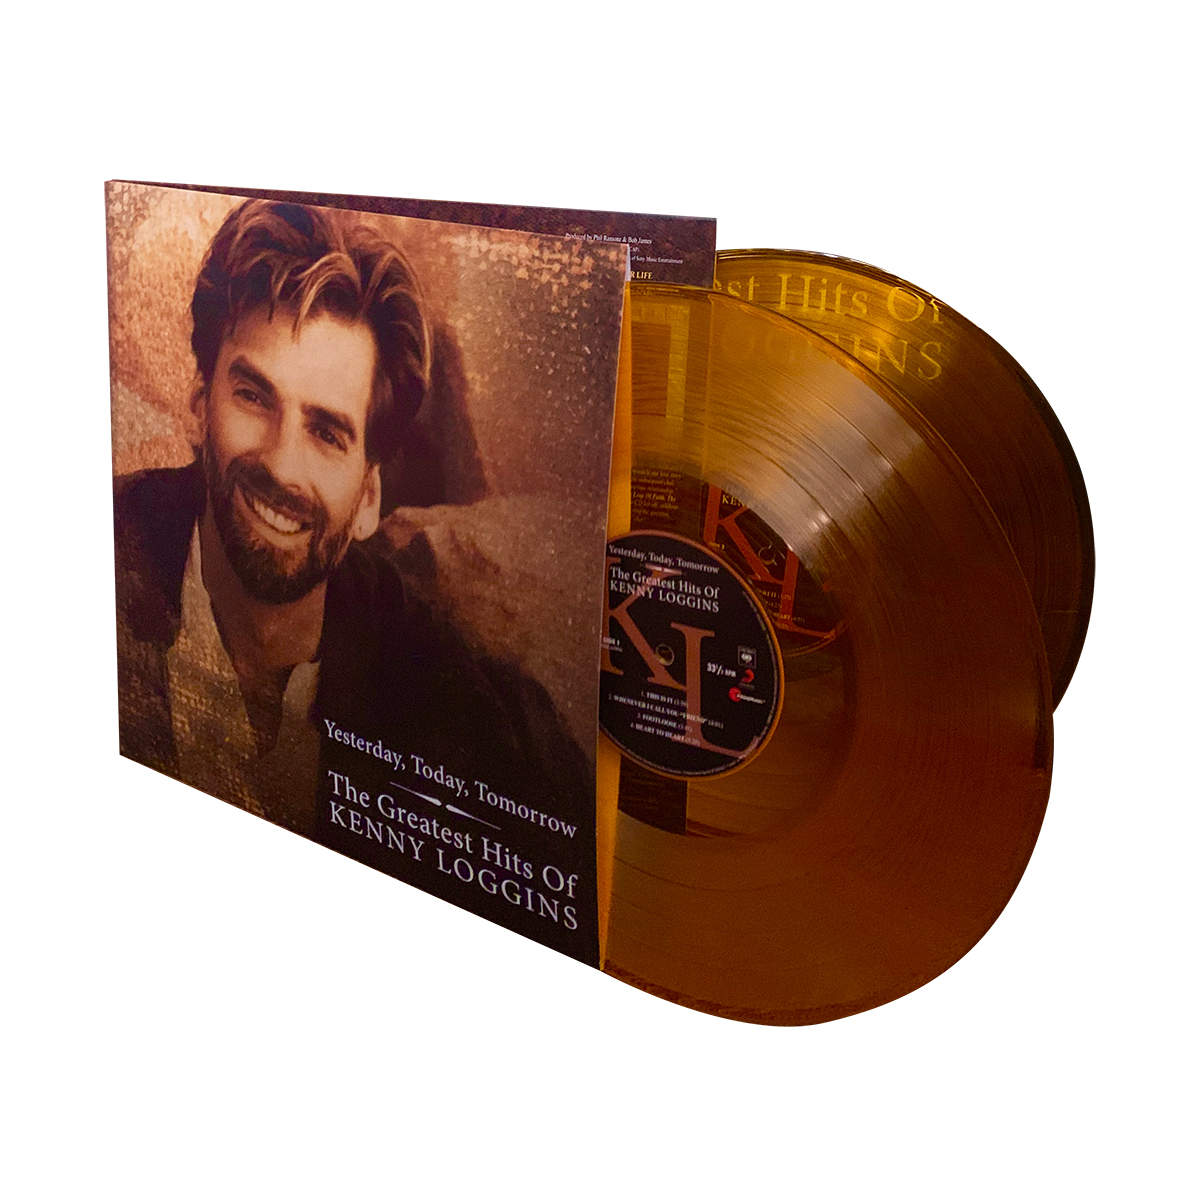 Kenny Loggins - Greatest Hits - Yesterday Today and Tomorrow (180 Gram Translucent Gold Audiophile Vinyl/Limited Edition /Gatefold Cover & Poster)